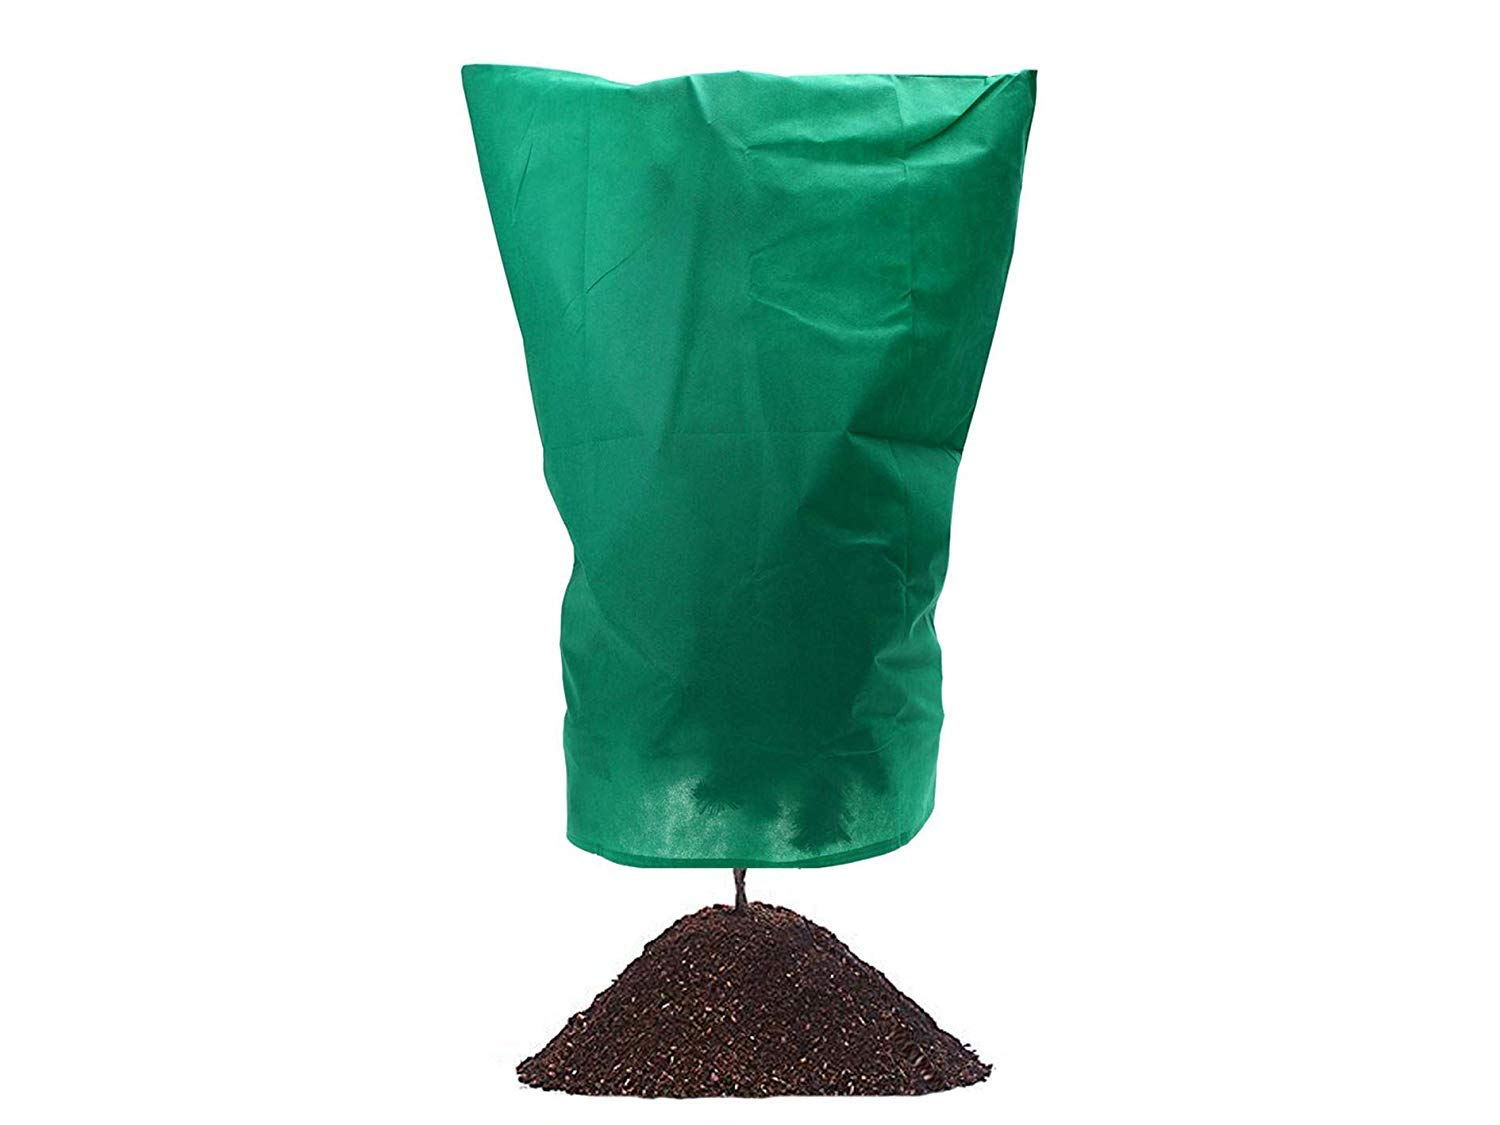 Plant Cover Frost Protection Bag from Being Damaged,Bad Weather Pests,Winter Wrap Warm Worth Frost Blanket Drawstring Bag for Flowers Shrubs Trees plant,Multiple, 30g thin Blanketswarm